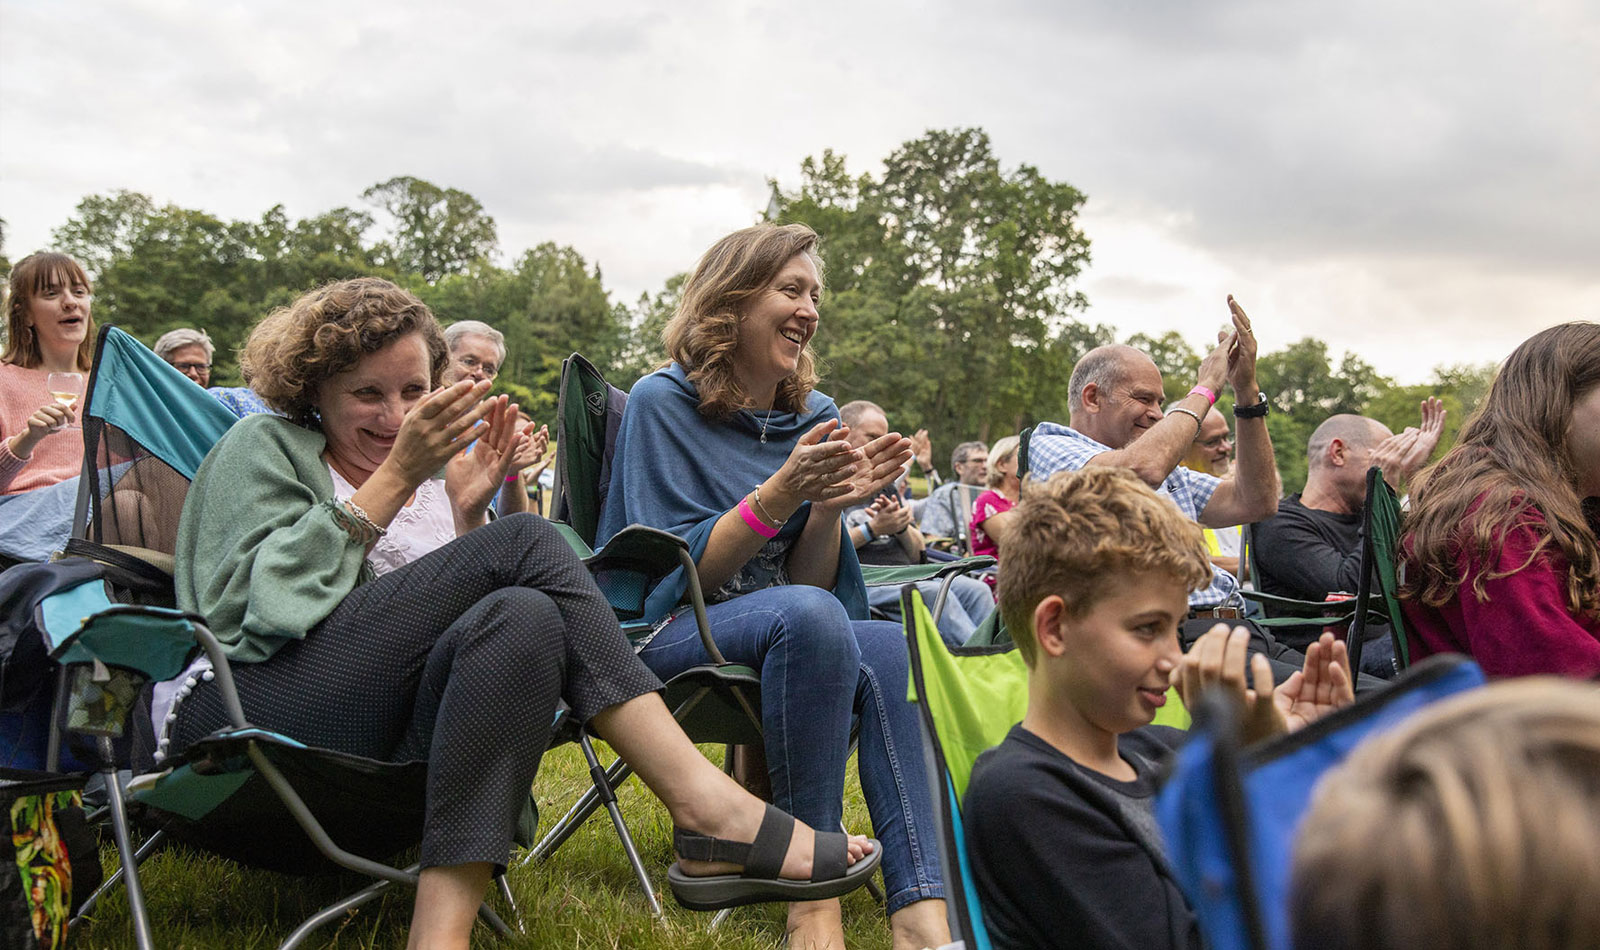 Families sitting outdoors clapping